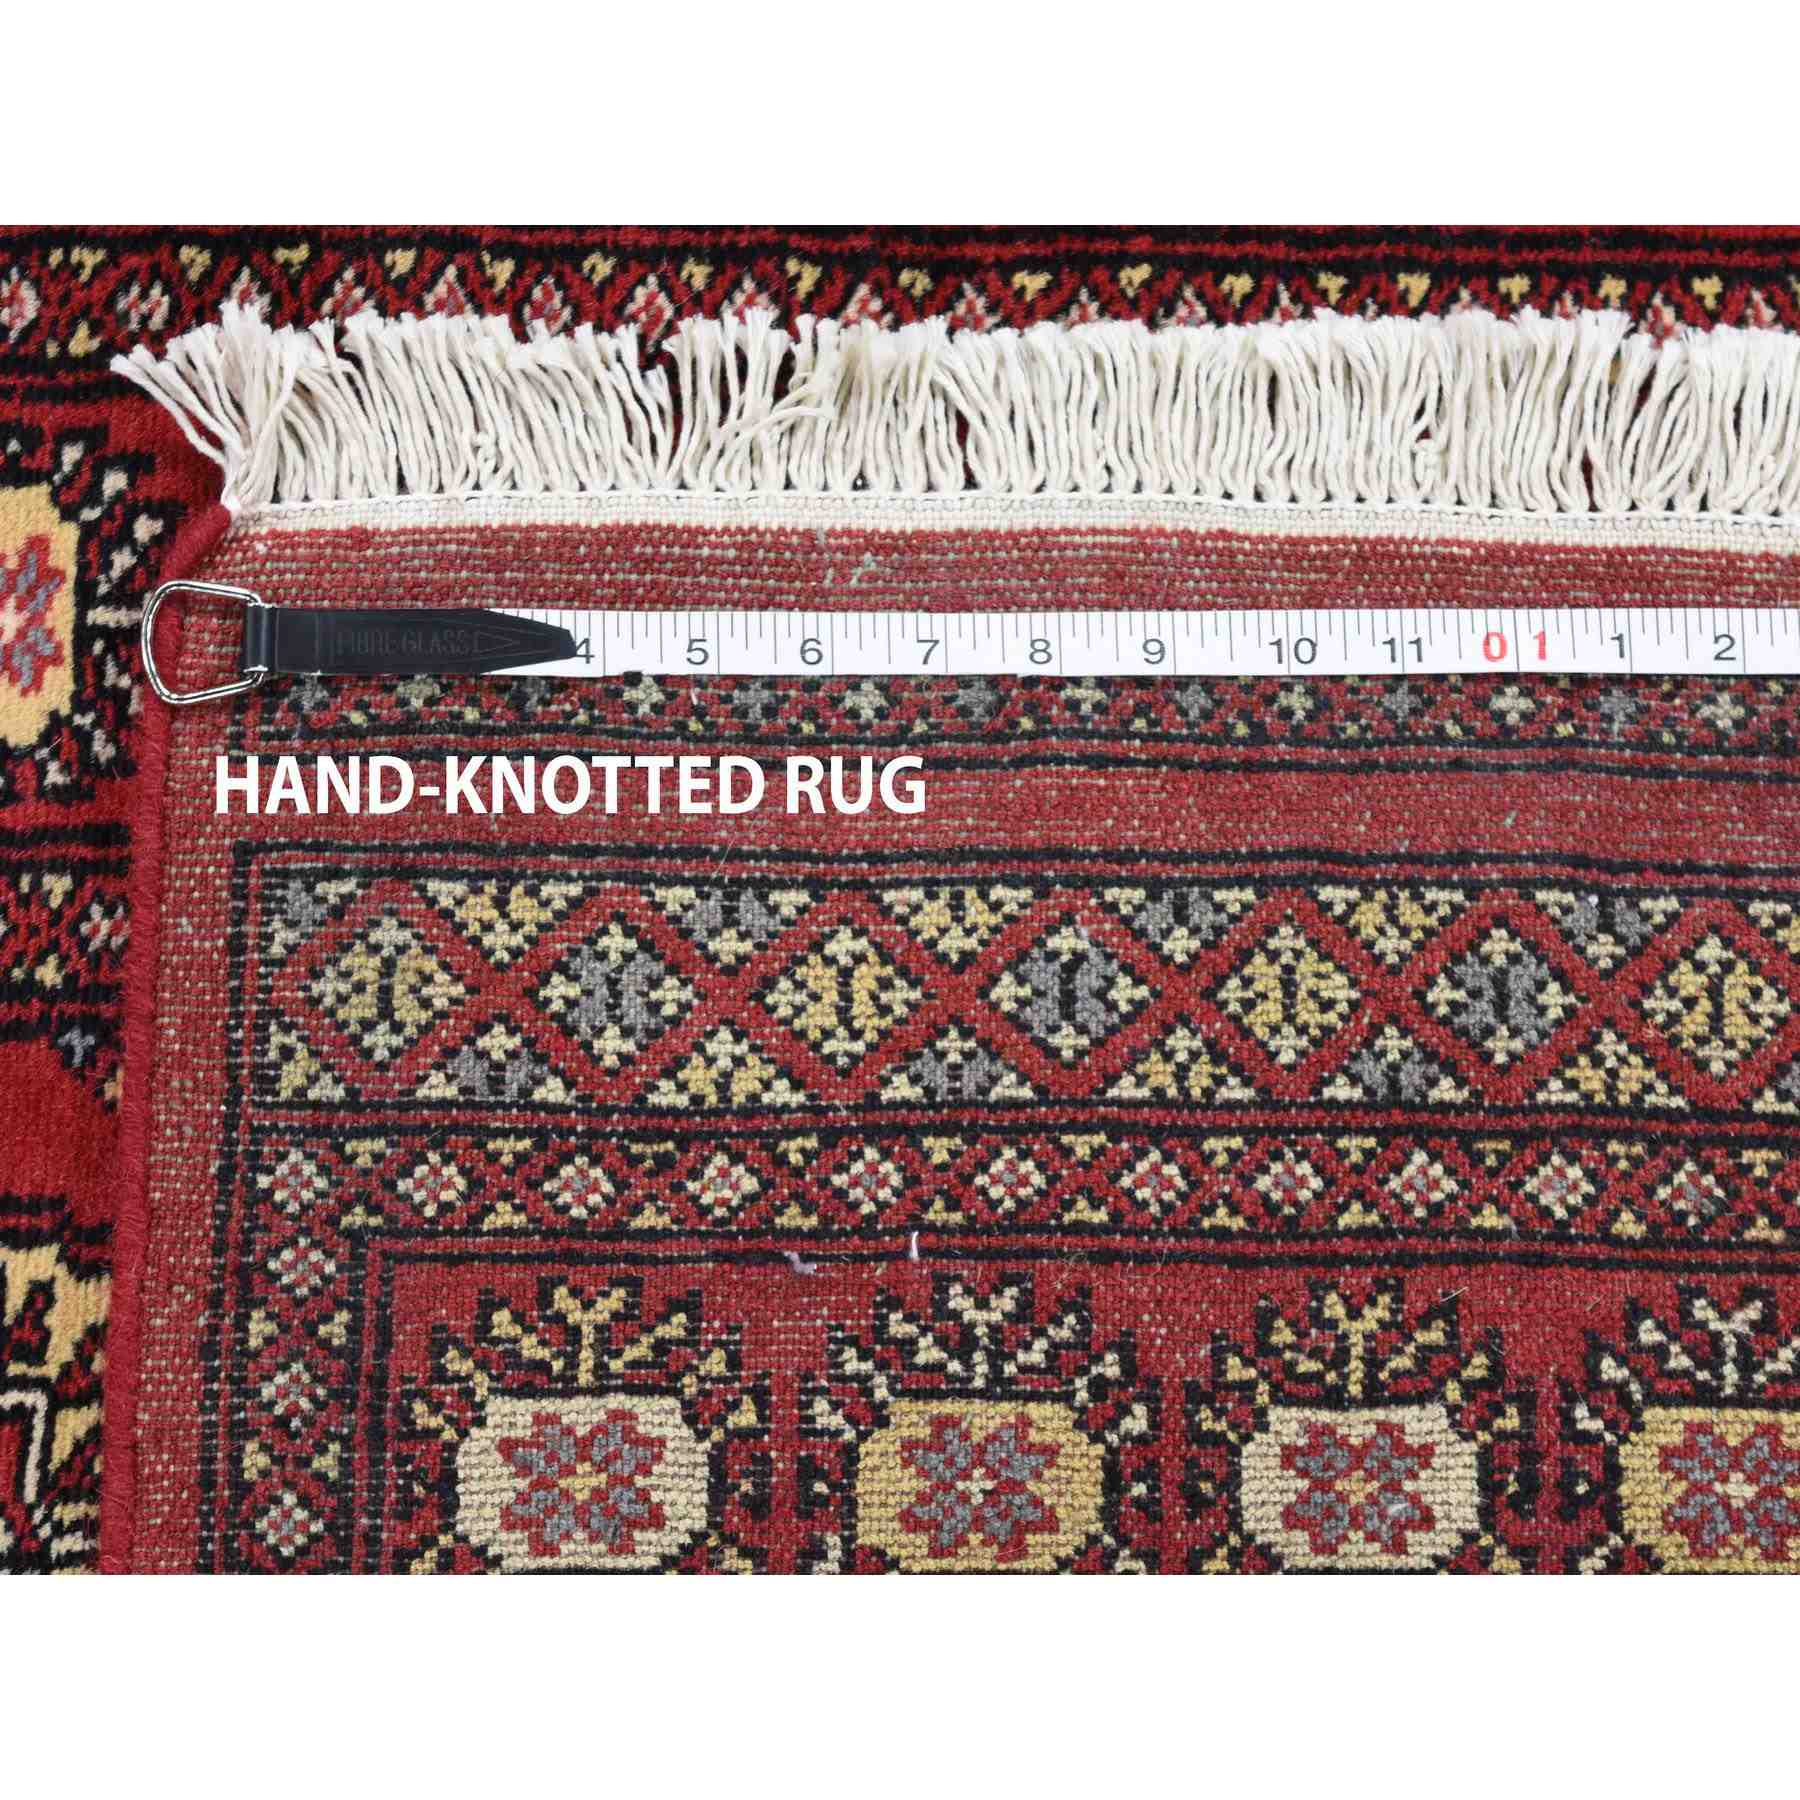 Tribal-Geometric-Hand-Knotted-Rug-235910